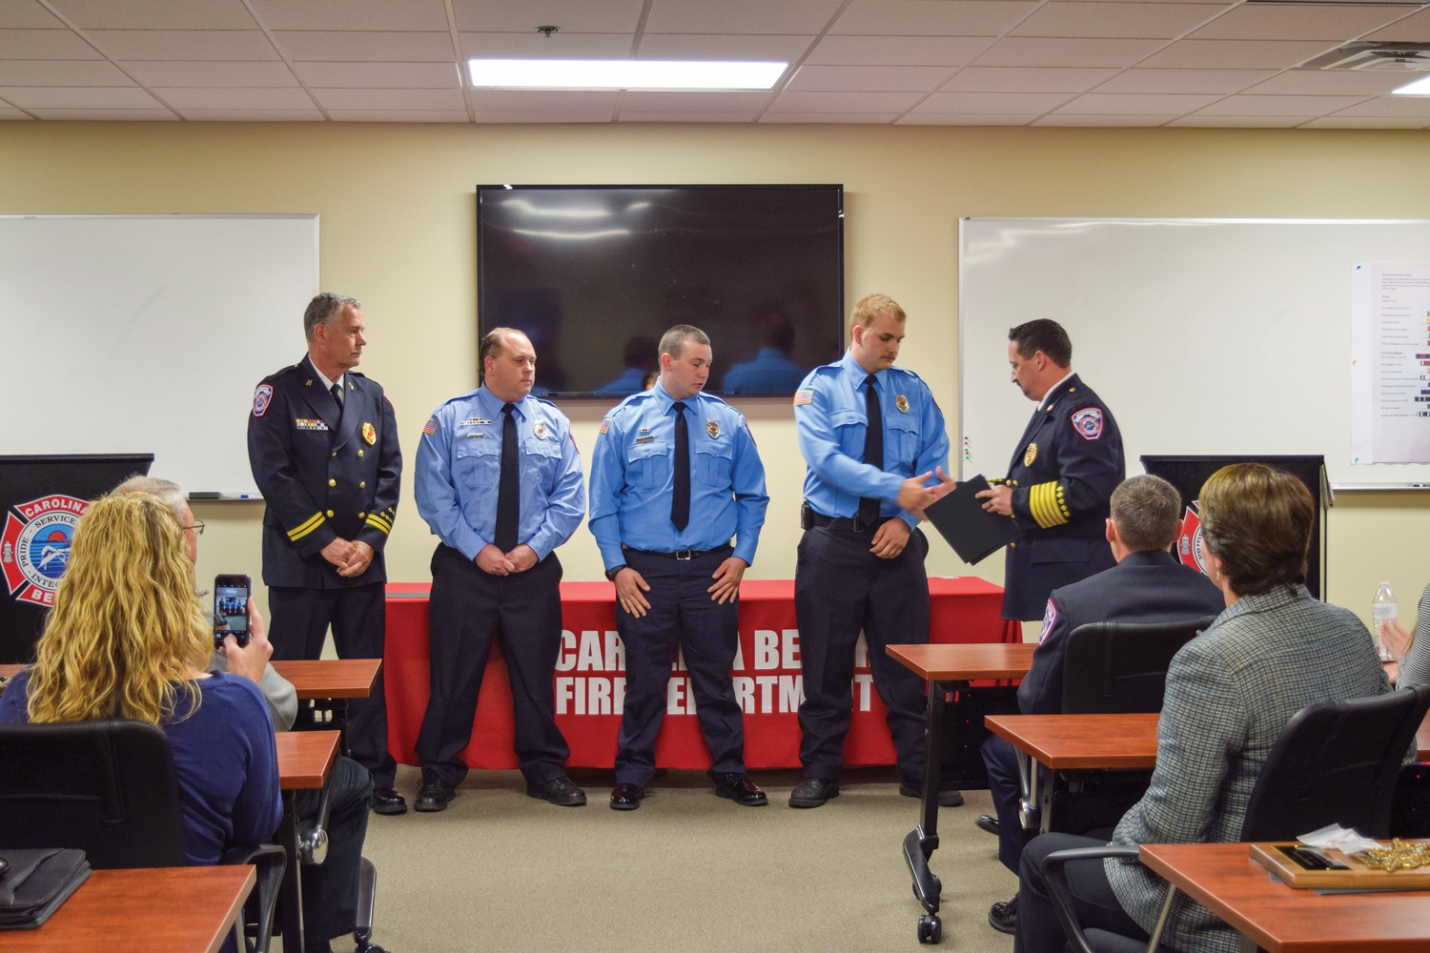 The Carolina Beach Fire Department held their annual service awards banquet Monday April 9th. (Pictured above: Right to left:) Fire Chief Alan Griffin awarding fire fighters John Bard, Dakota Griffin, Josh Canfield and Ken Athing with the  Meritorious Unit Citation for their efforts at a October 2017 water rescue call.